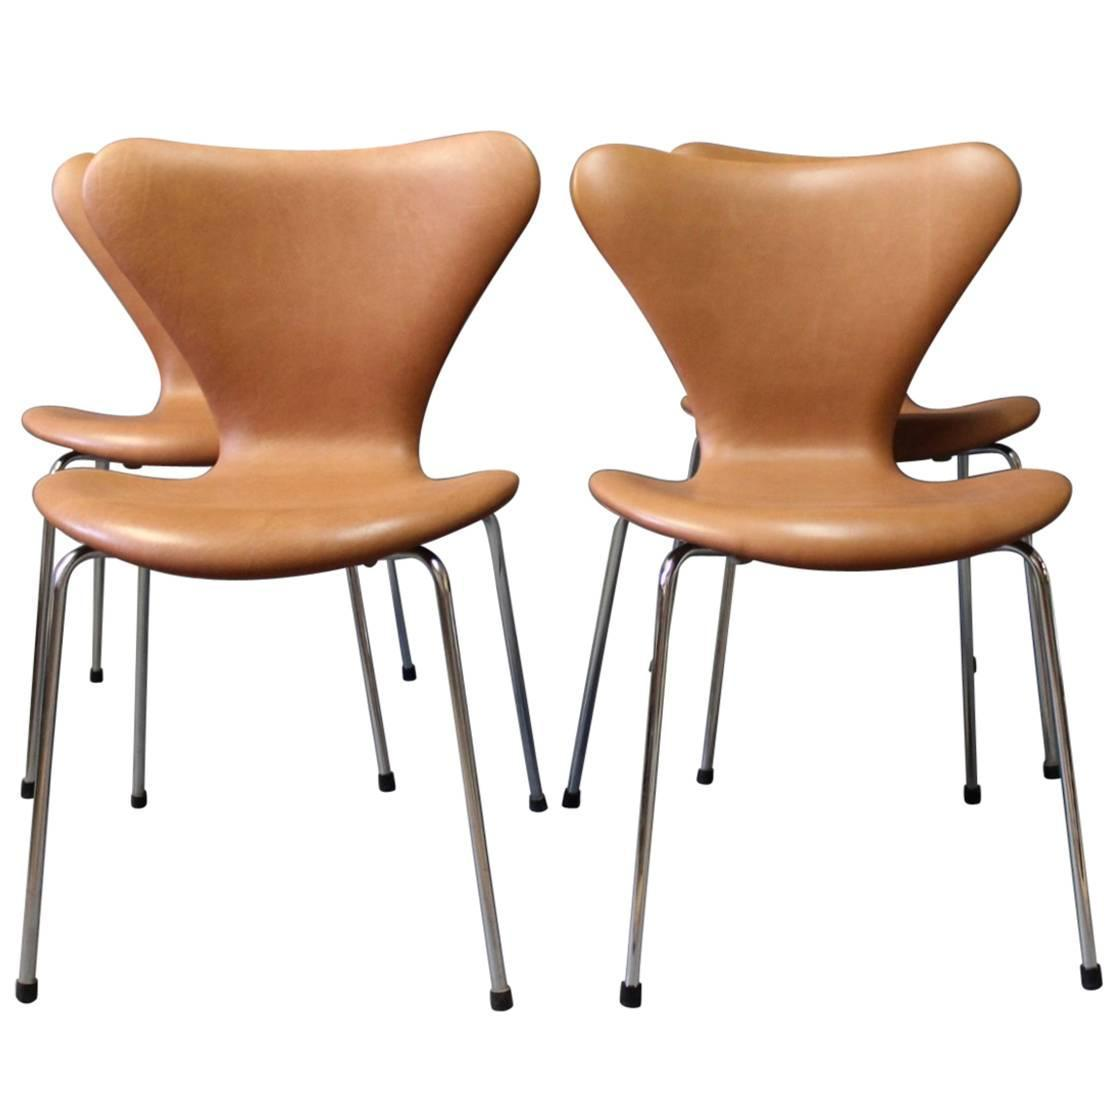 arne jacobsen dining room chairs 87 for sale at 1stdibs